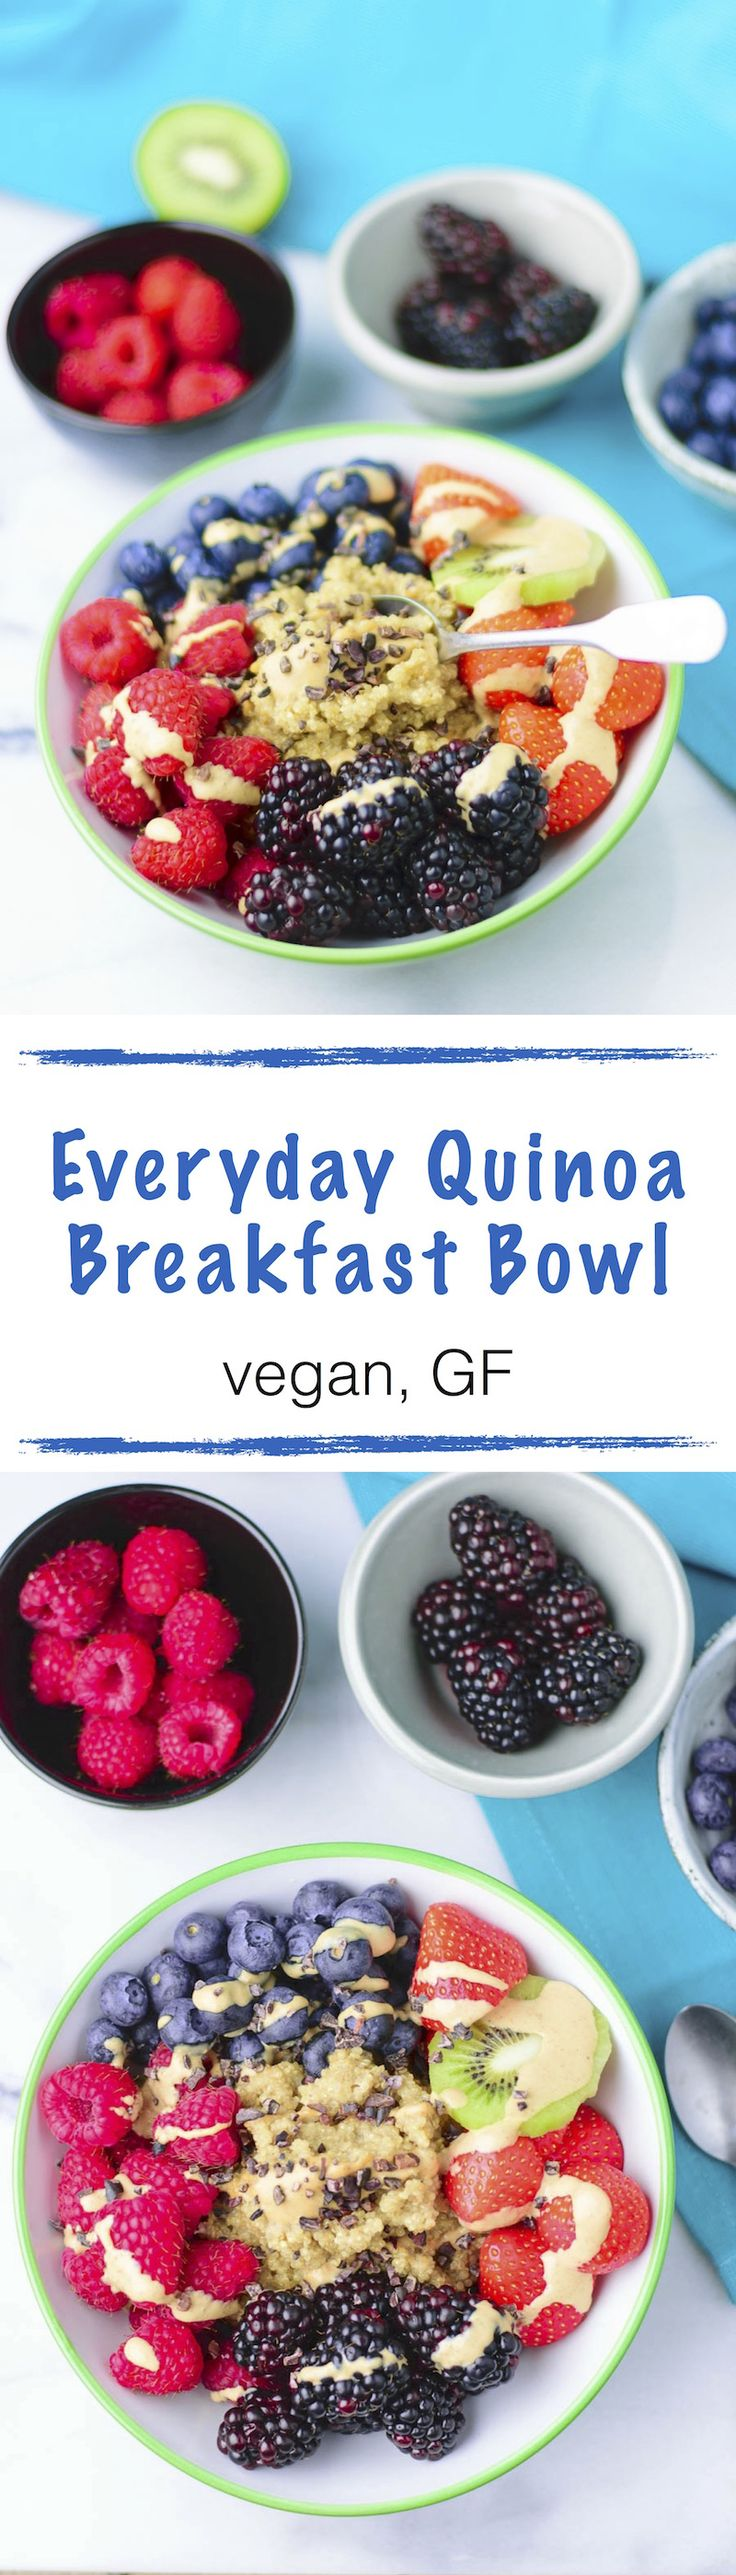 Everyday Quinoa Breakfast Bowl - delicious and healthy breakfast recipe for healthy kids! Naturally gluten free and can be dairy free too!